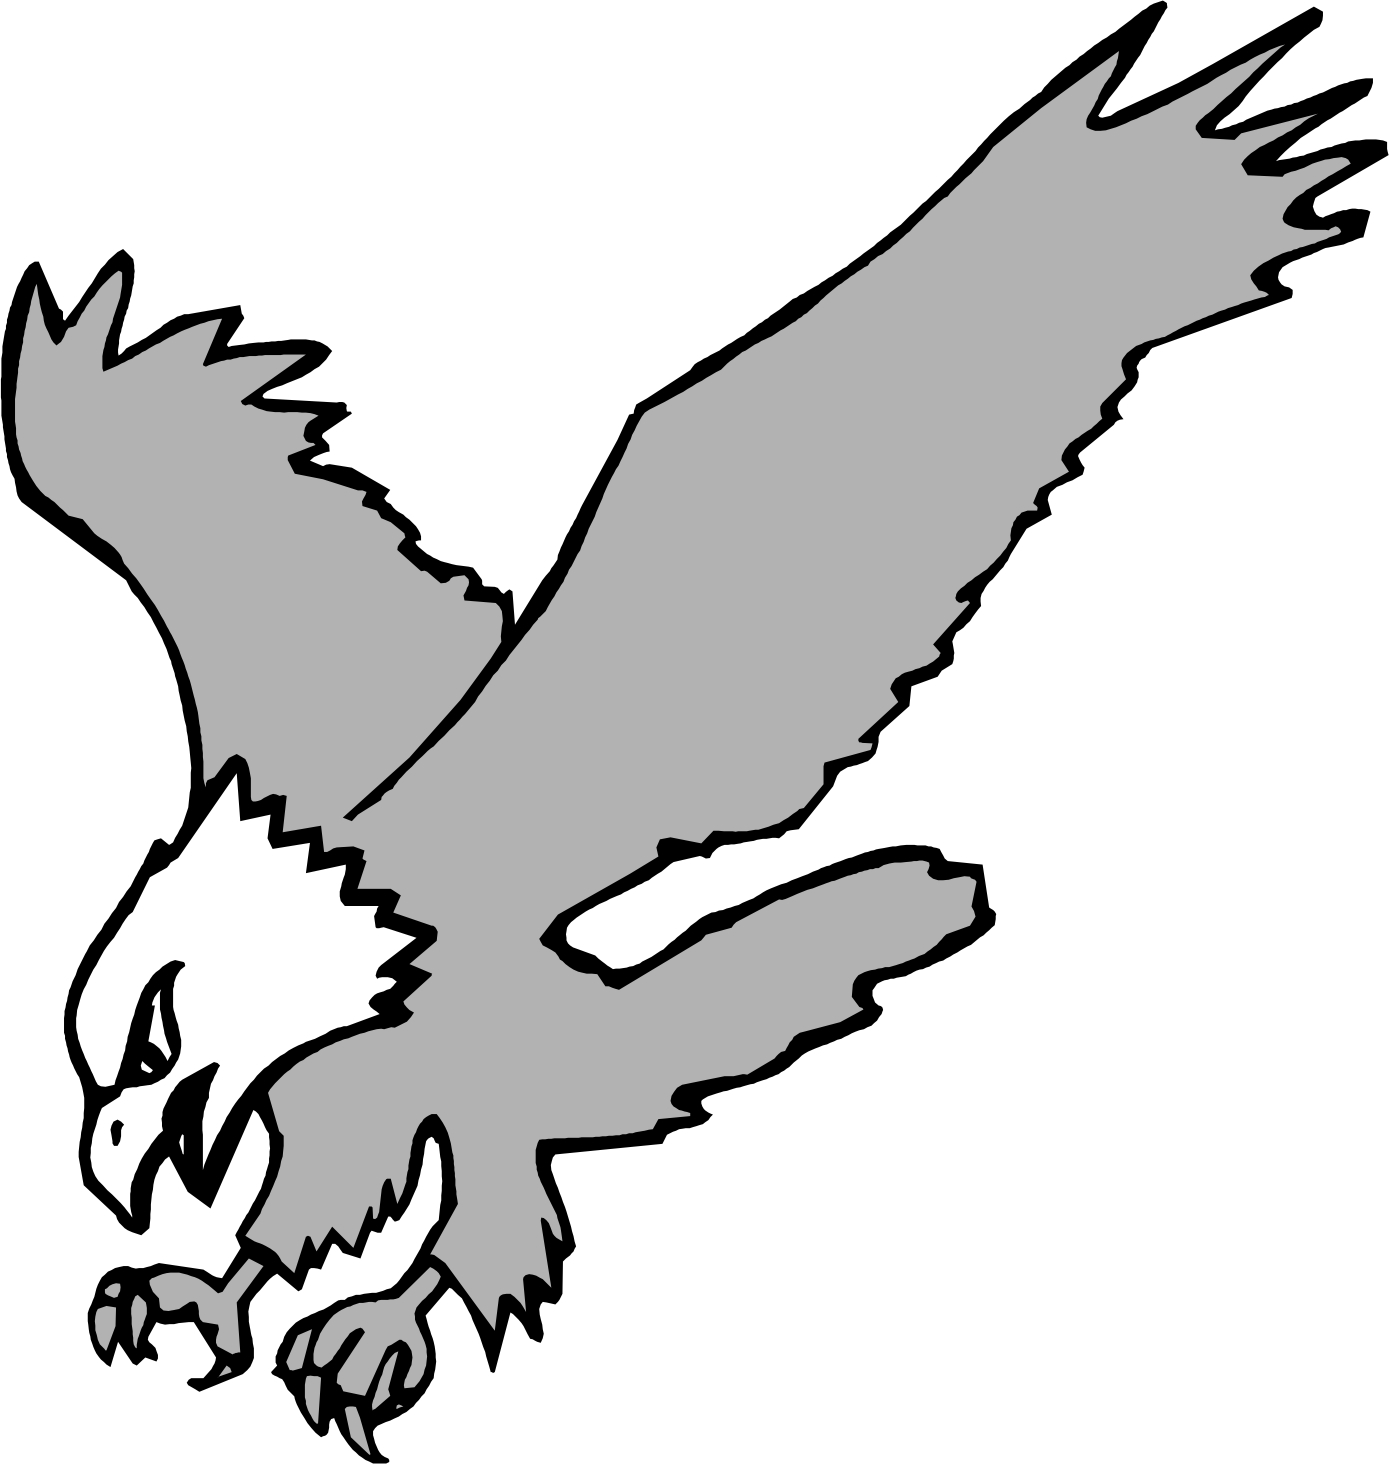 Eagle Cartoon Images - ClipArt Best